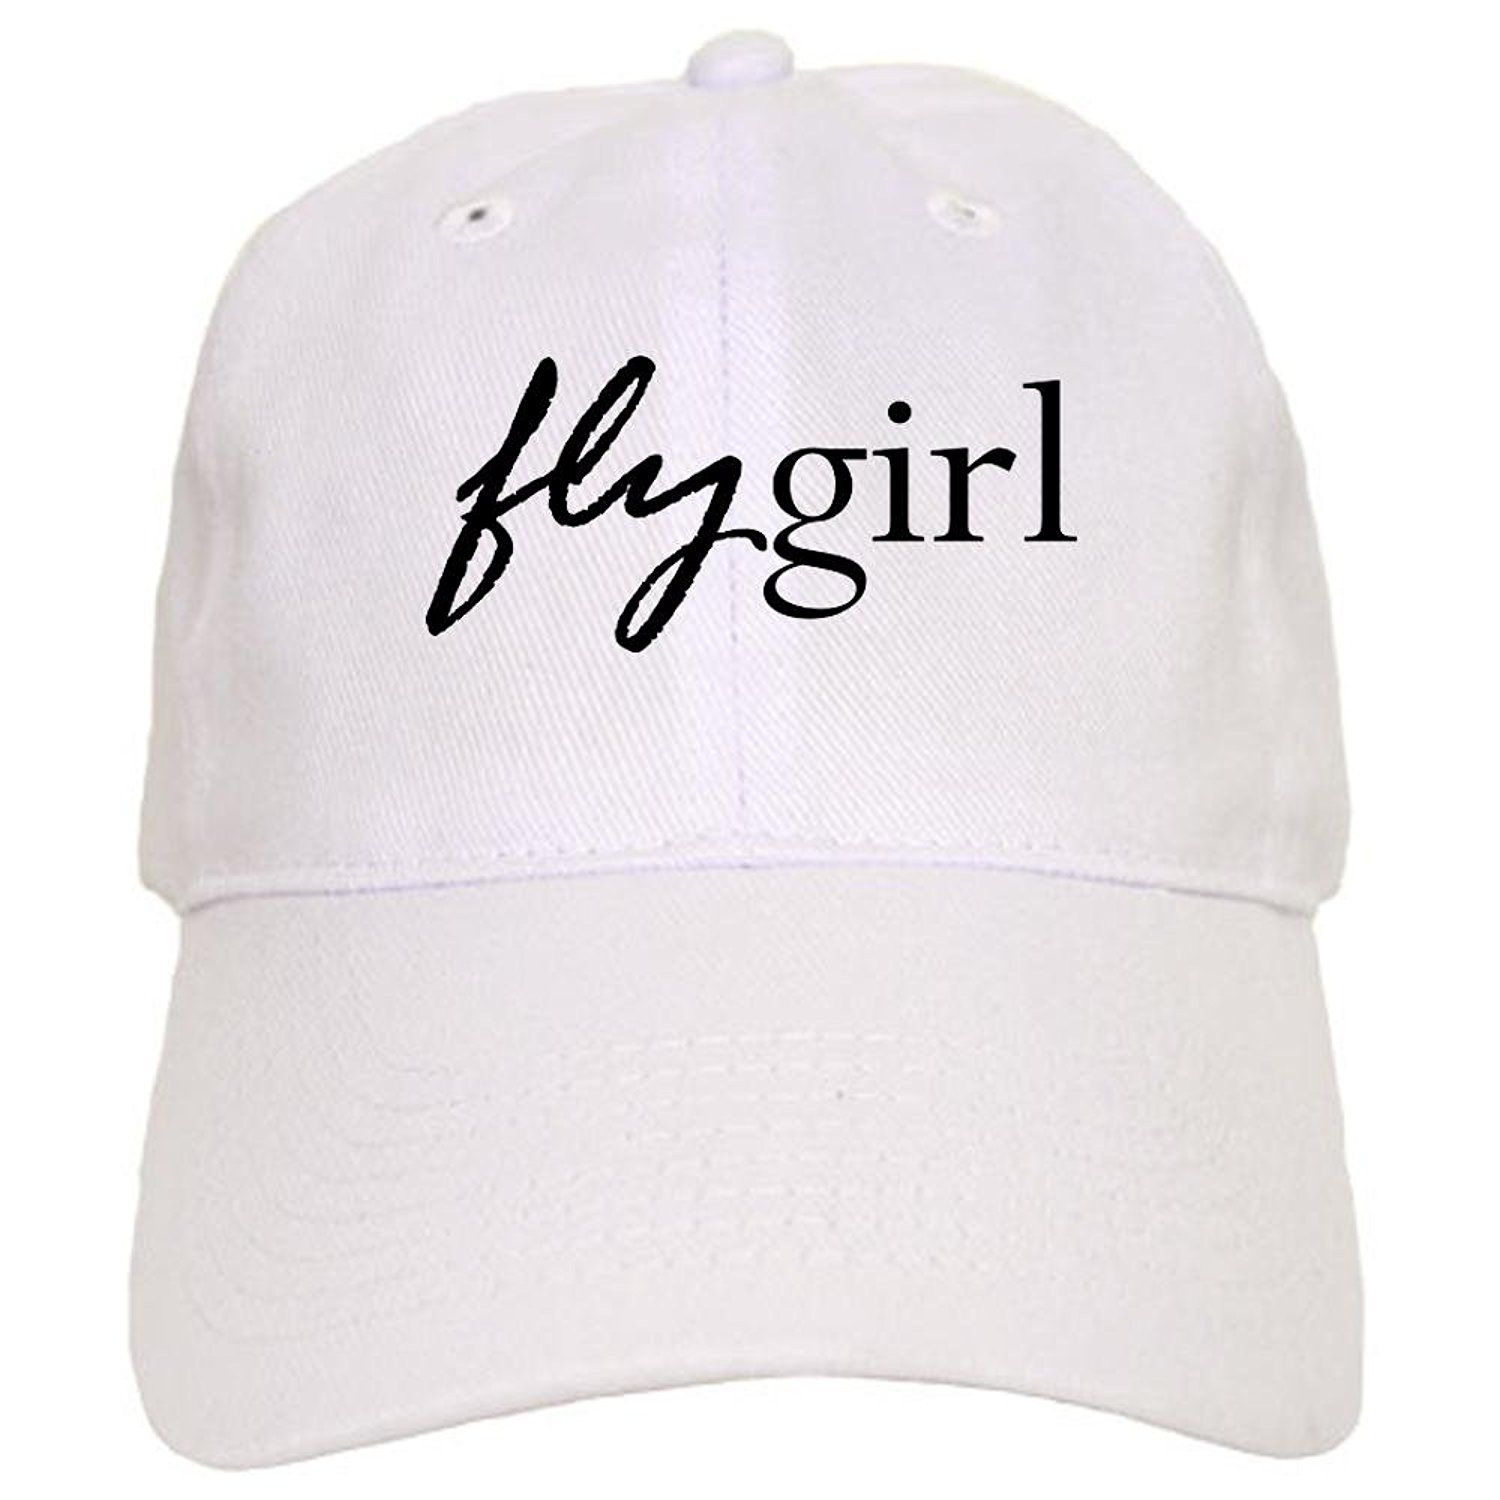 b22a0362832 CafePress - Fly Girl Cap - Baseball Cap with Adjustable Closure ...